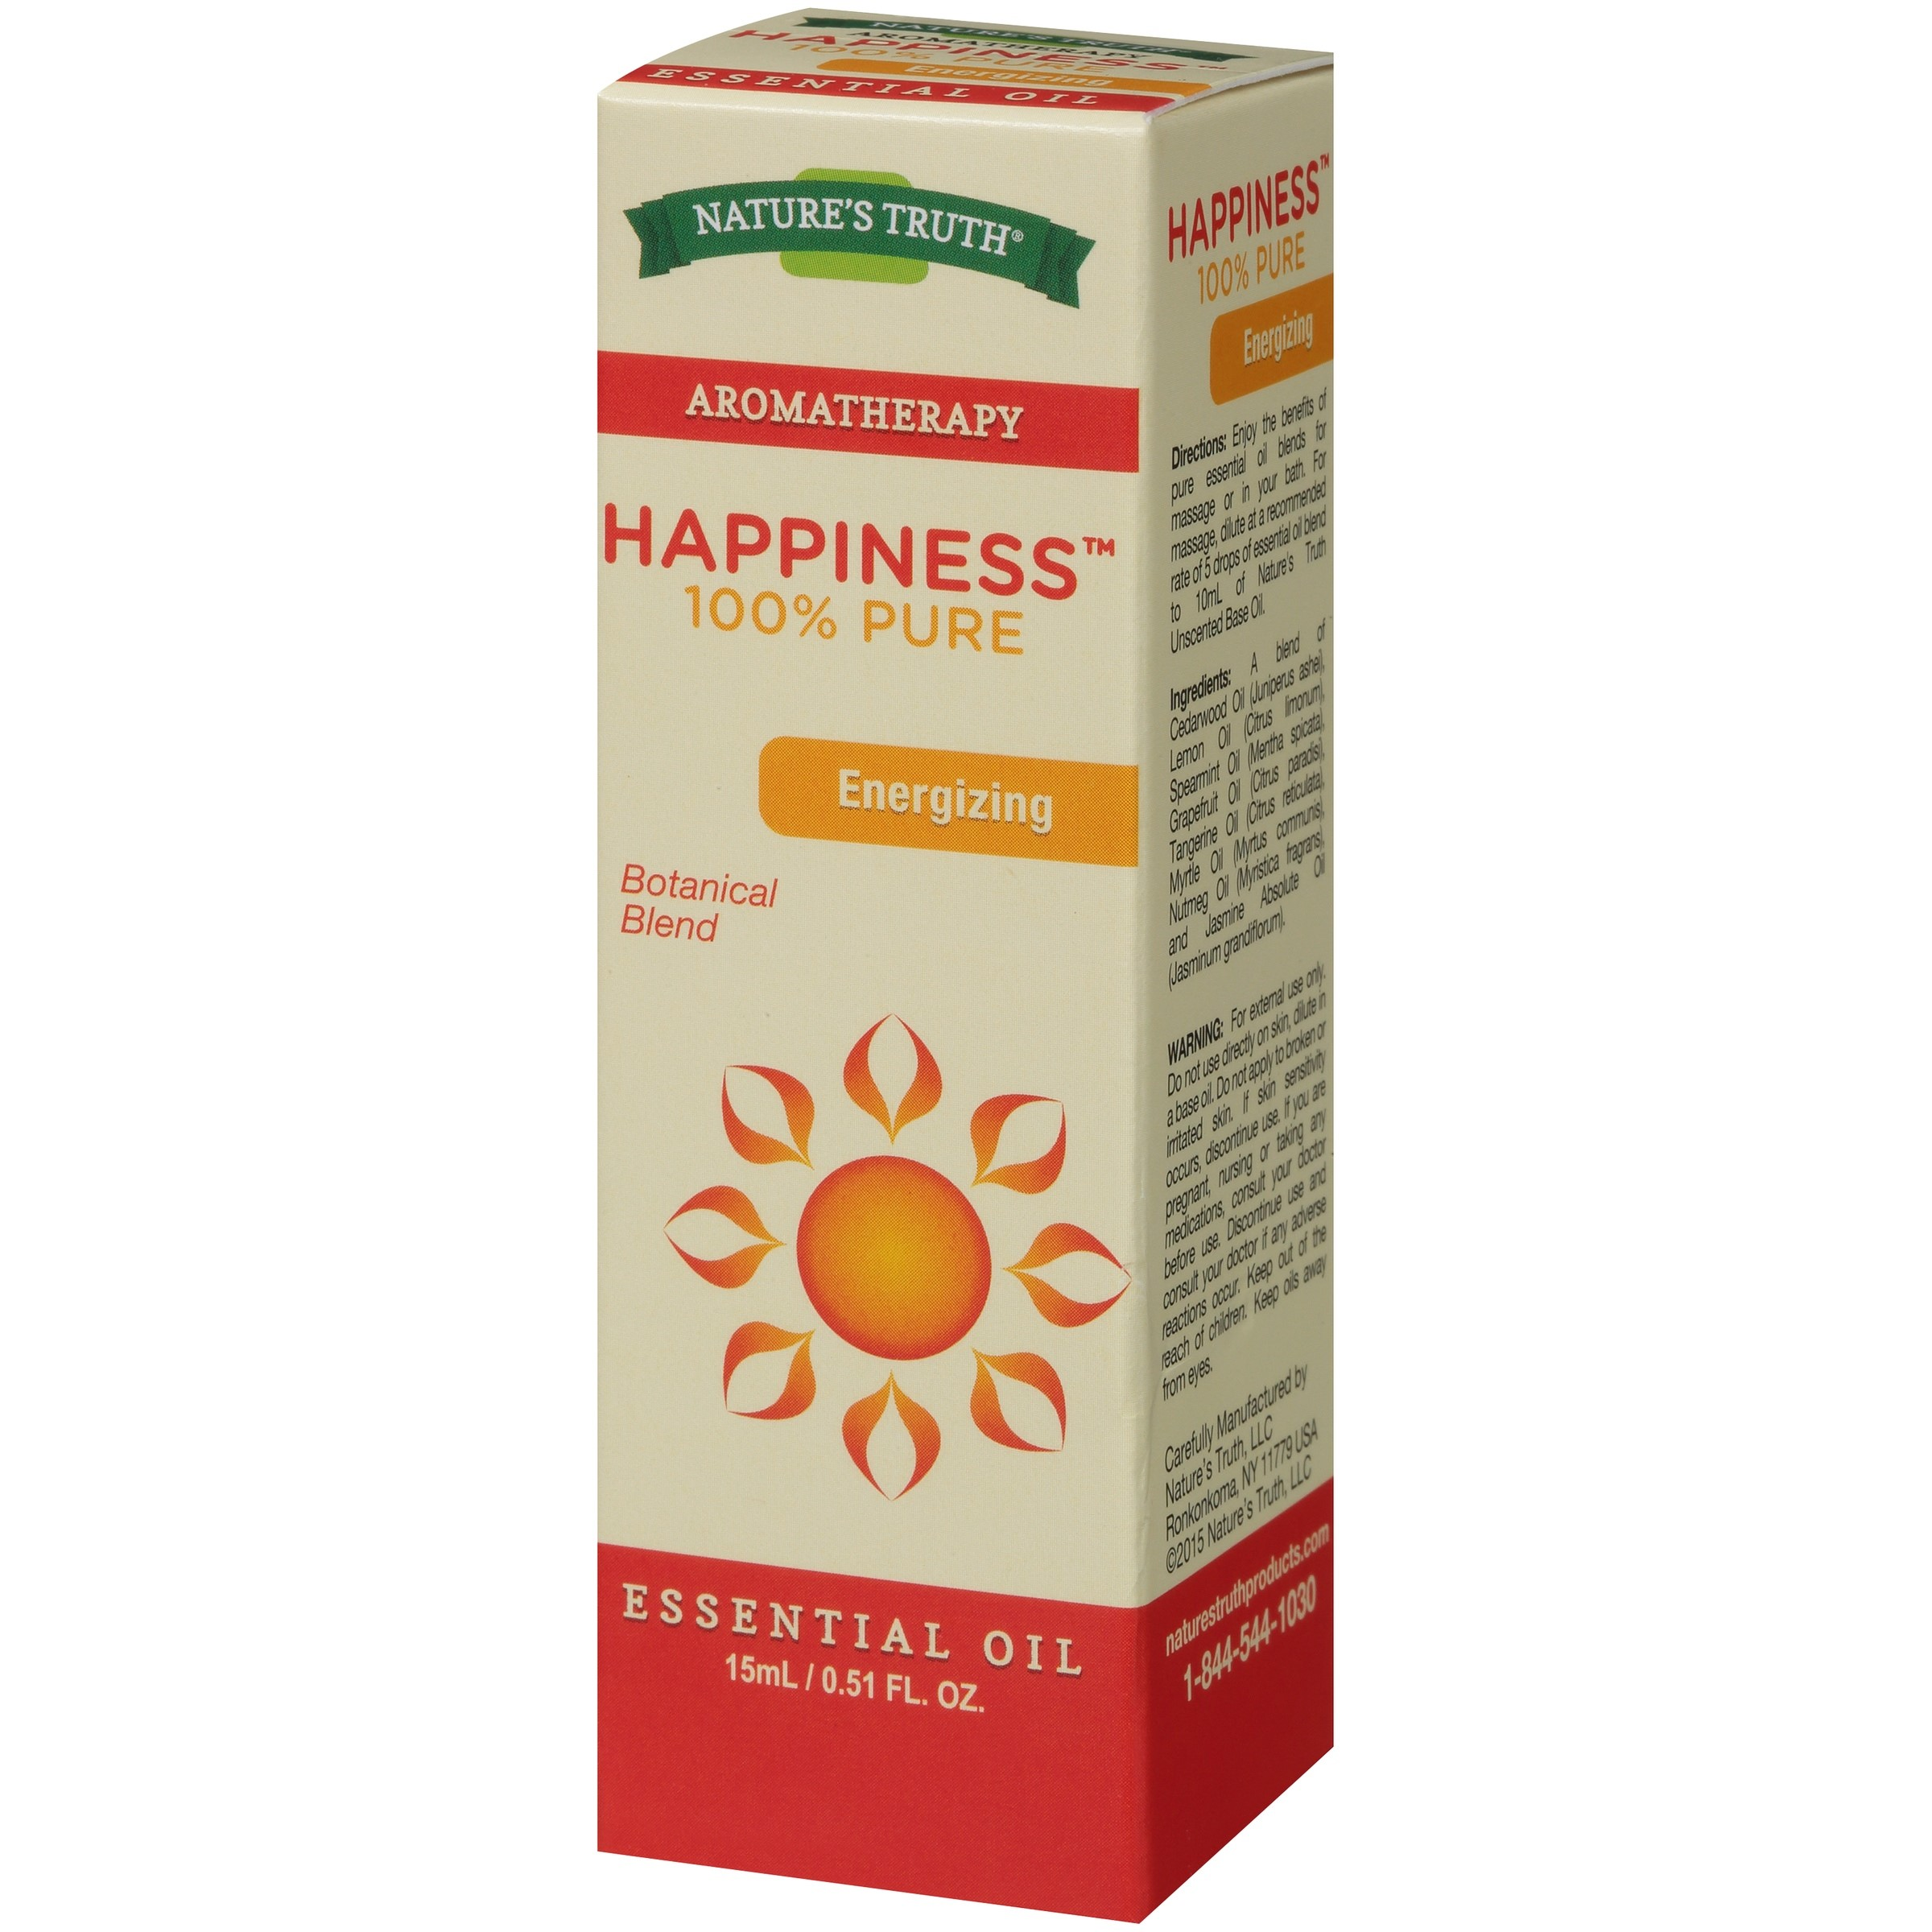 Nature's Truth Aromatherapy Happiness Essential Oil Blend, 0.51 Fl Oz